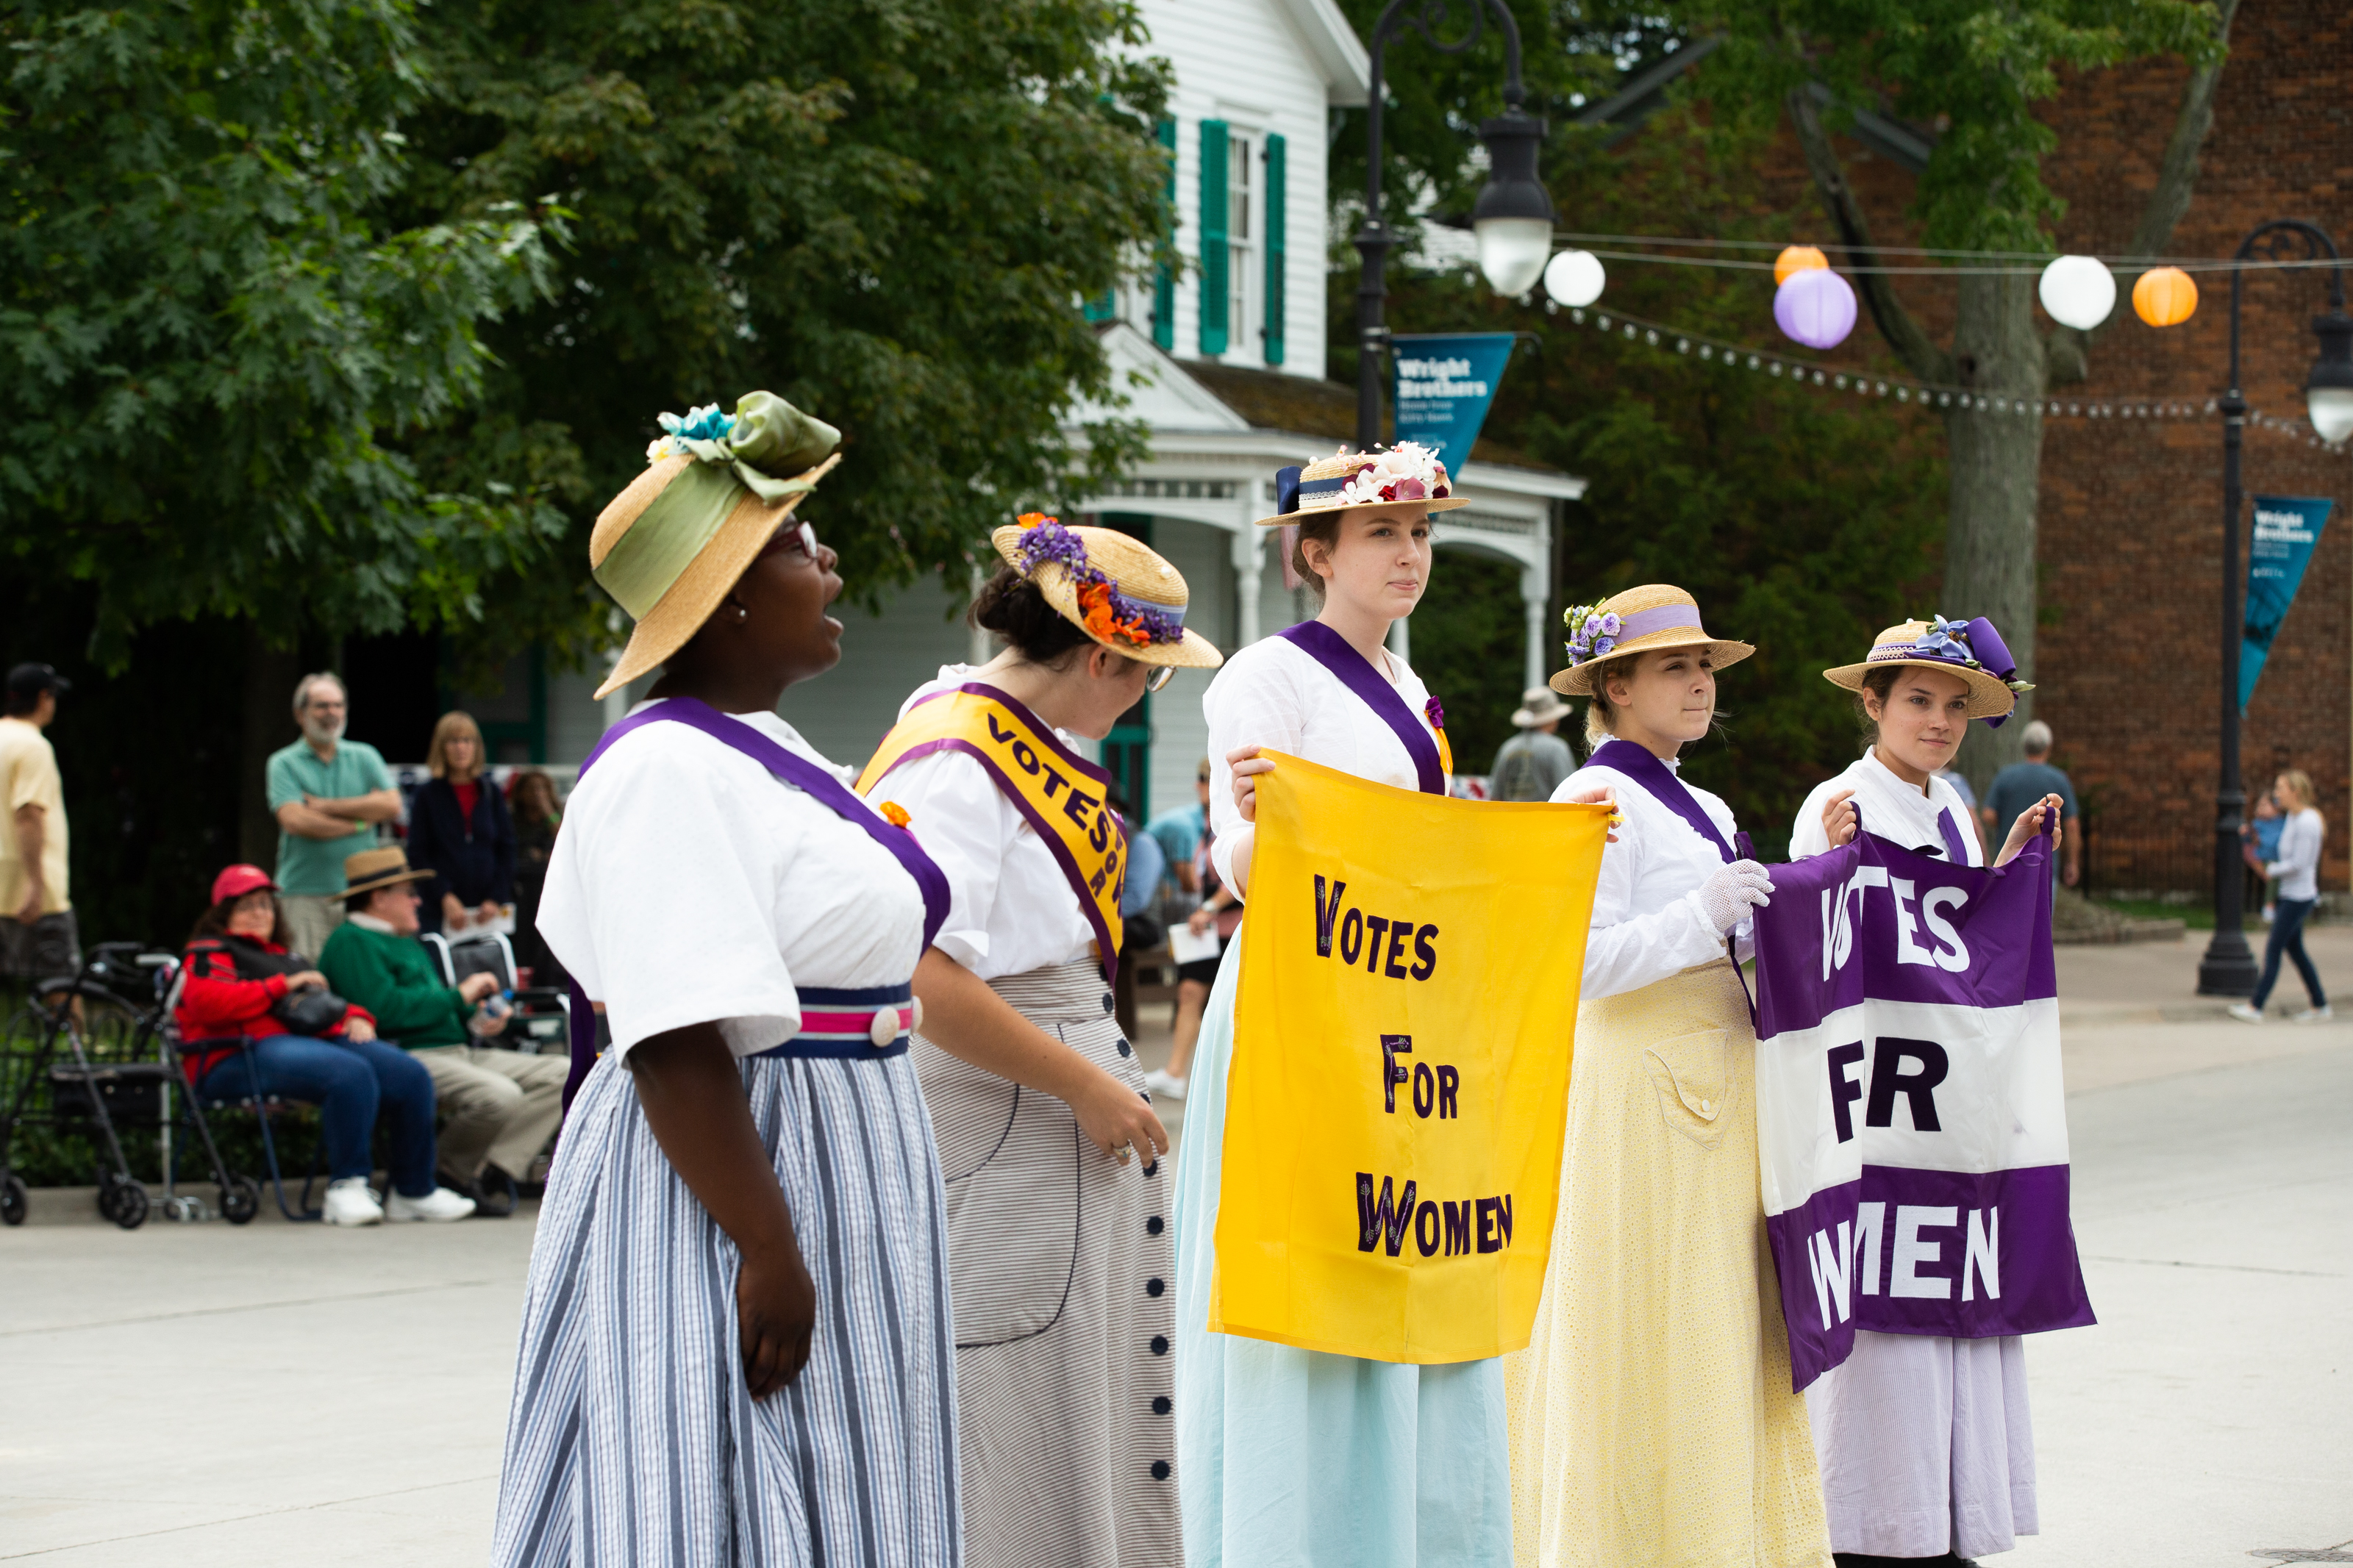 Five women wearing sashes and holding signs related to women's suffrage